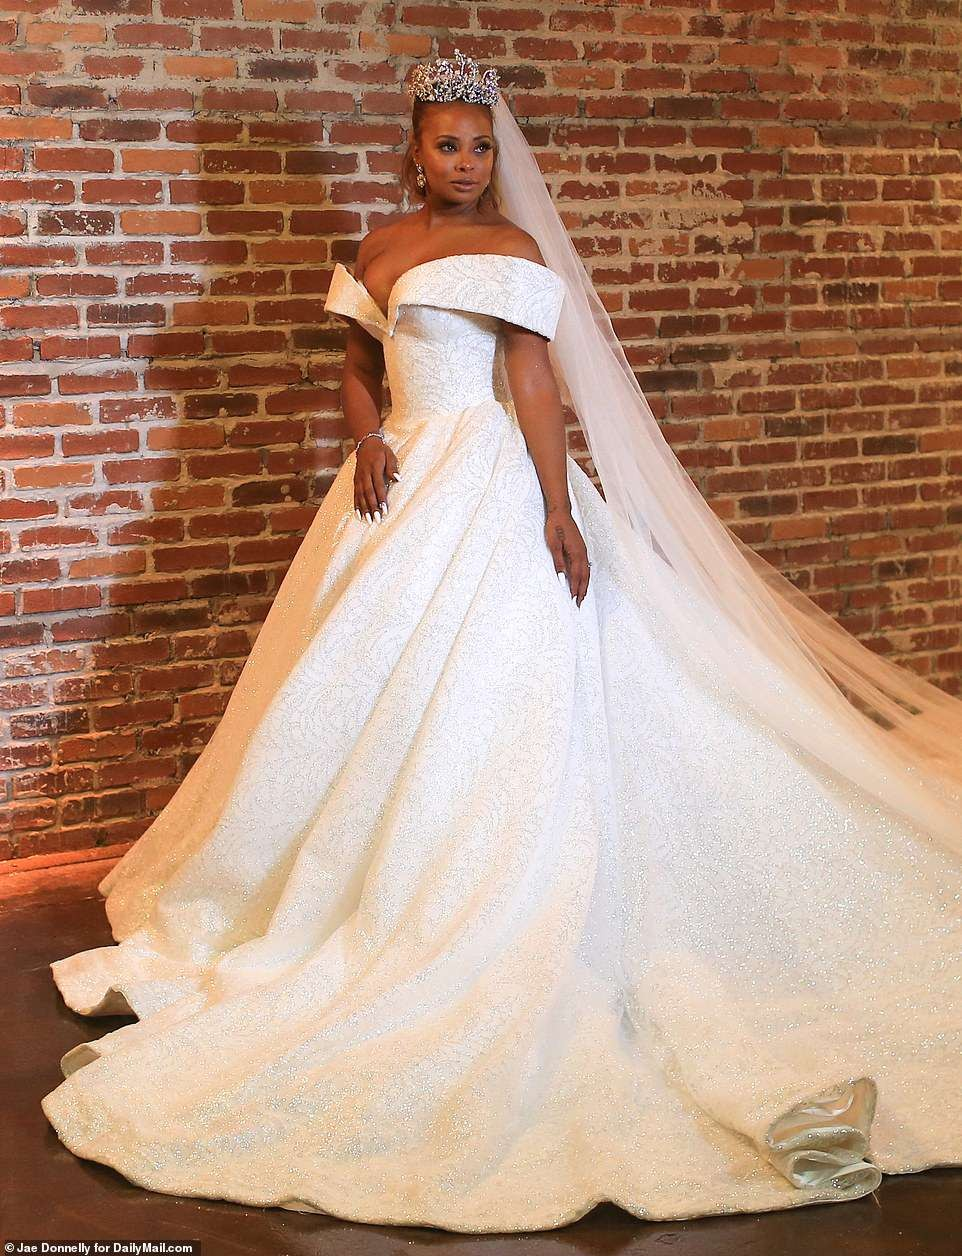 Check out stunning photos from Eva Marcille's flamboyant wedding to Michael Sterling